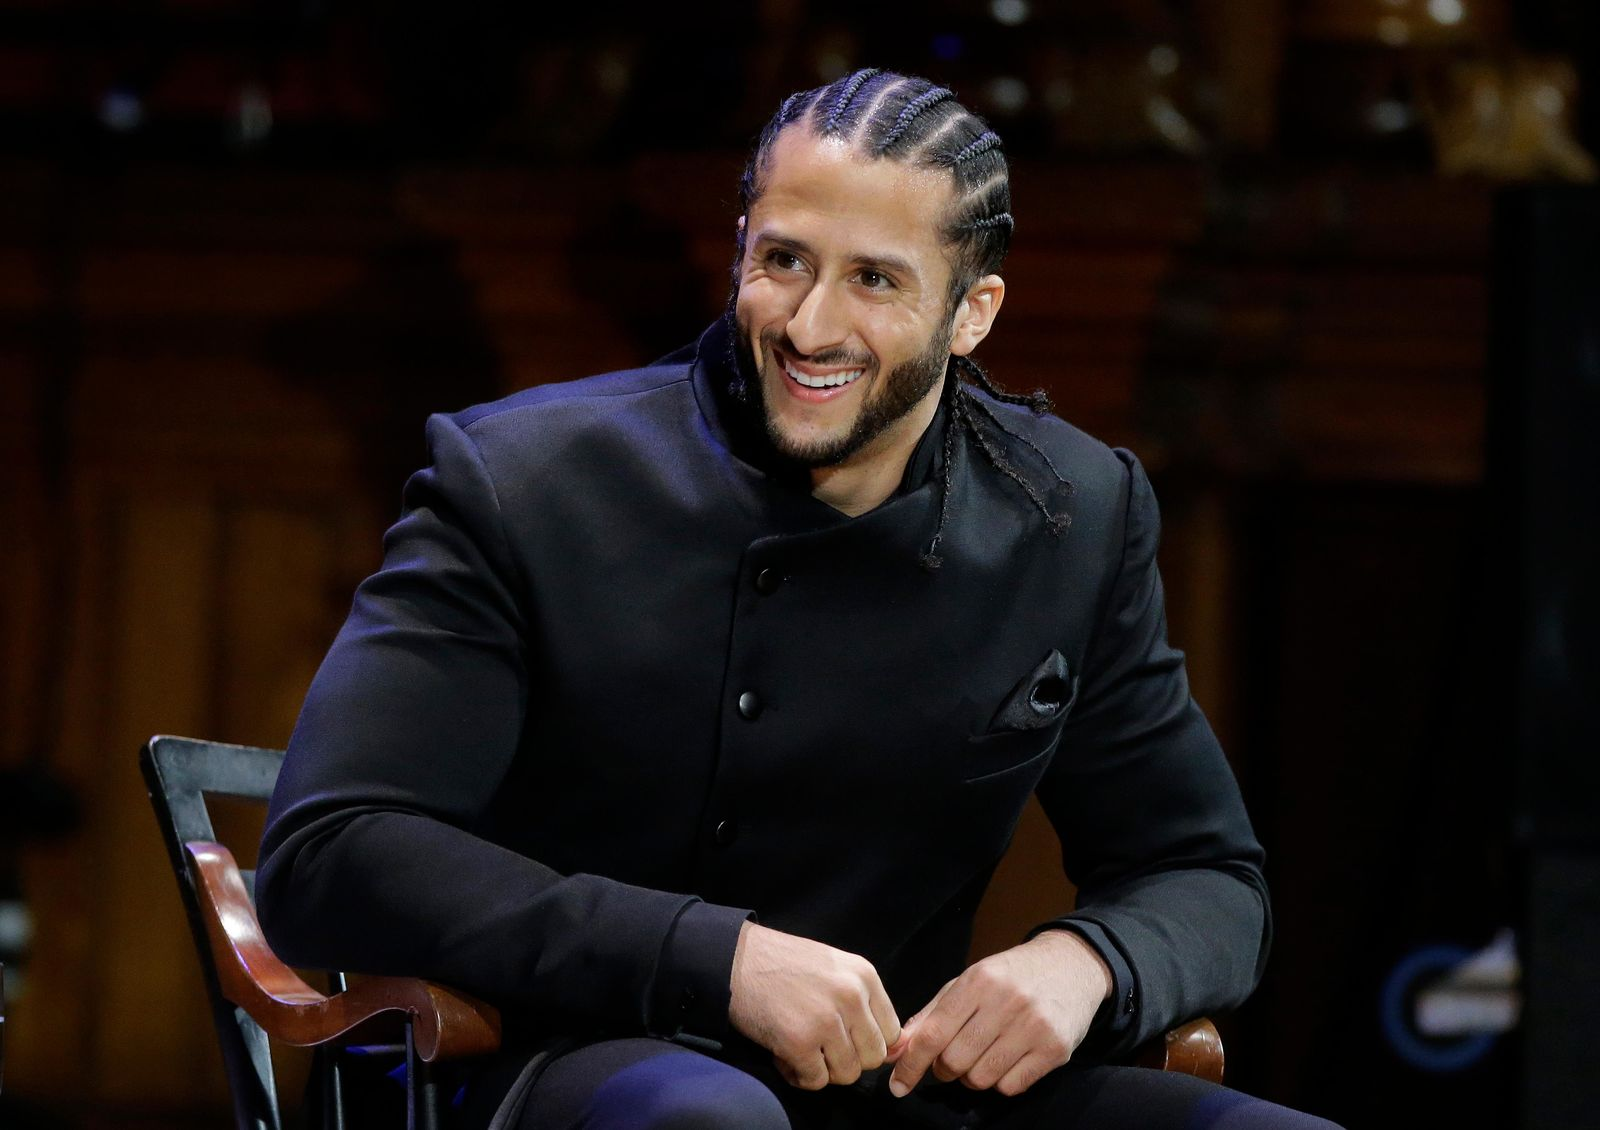 FILE - In this Oct. 11, 2018, file photo, former NFL football quarterback Colin Kaepernick smiles on stage during W.E.B. Du Bois Medal ceremonies at Harvard University, in Cambridge, Mass. Kaepernick plans to audition for NFL teams on Saturday, Nov. 16, 2019, in a private workout arranged by the league to be held in Atlanta. (AP Photo/Steven Senne, File)